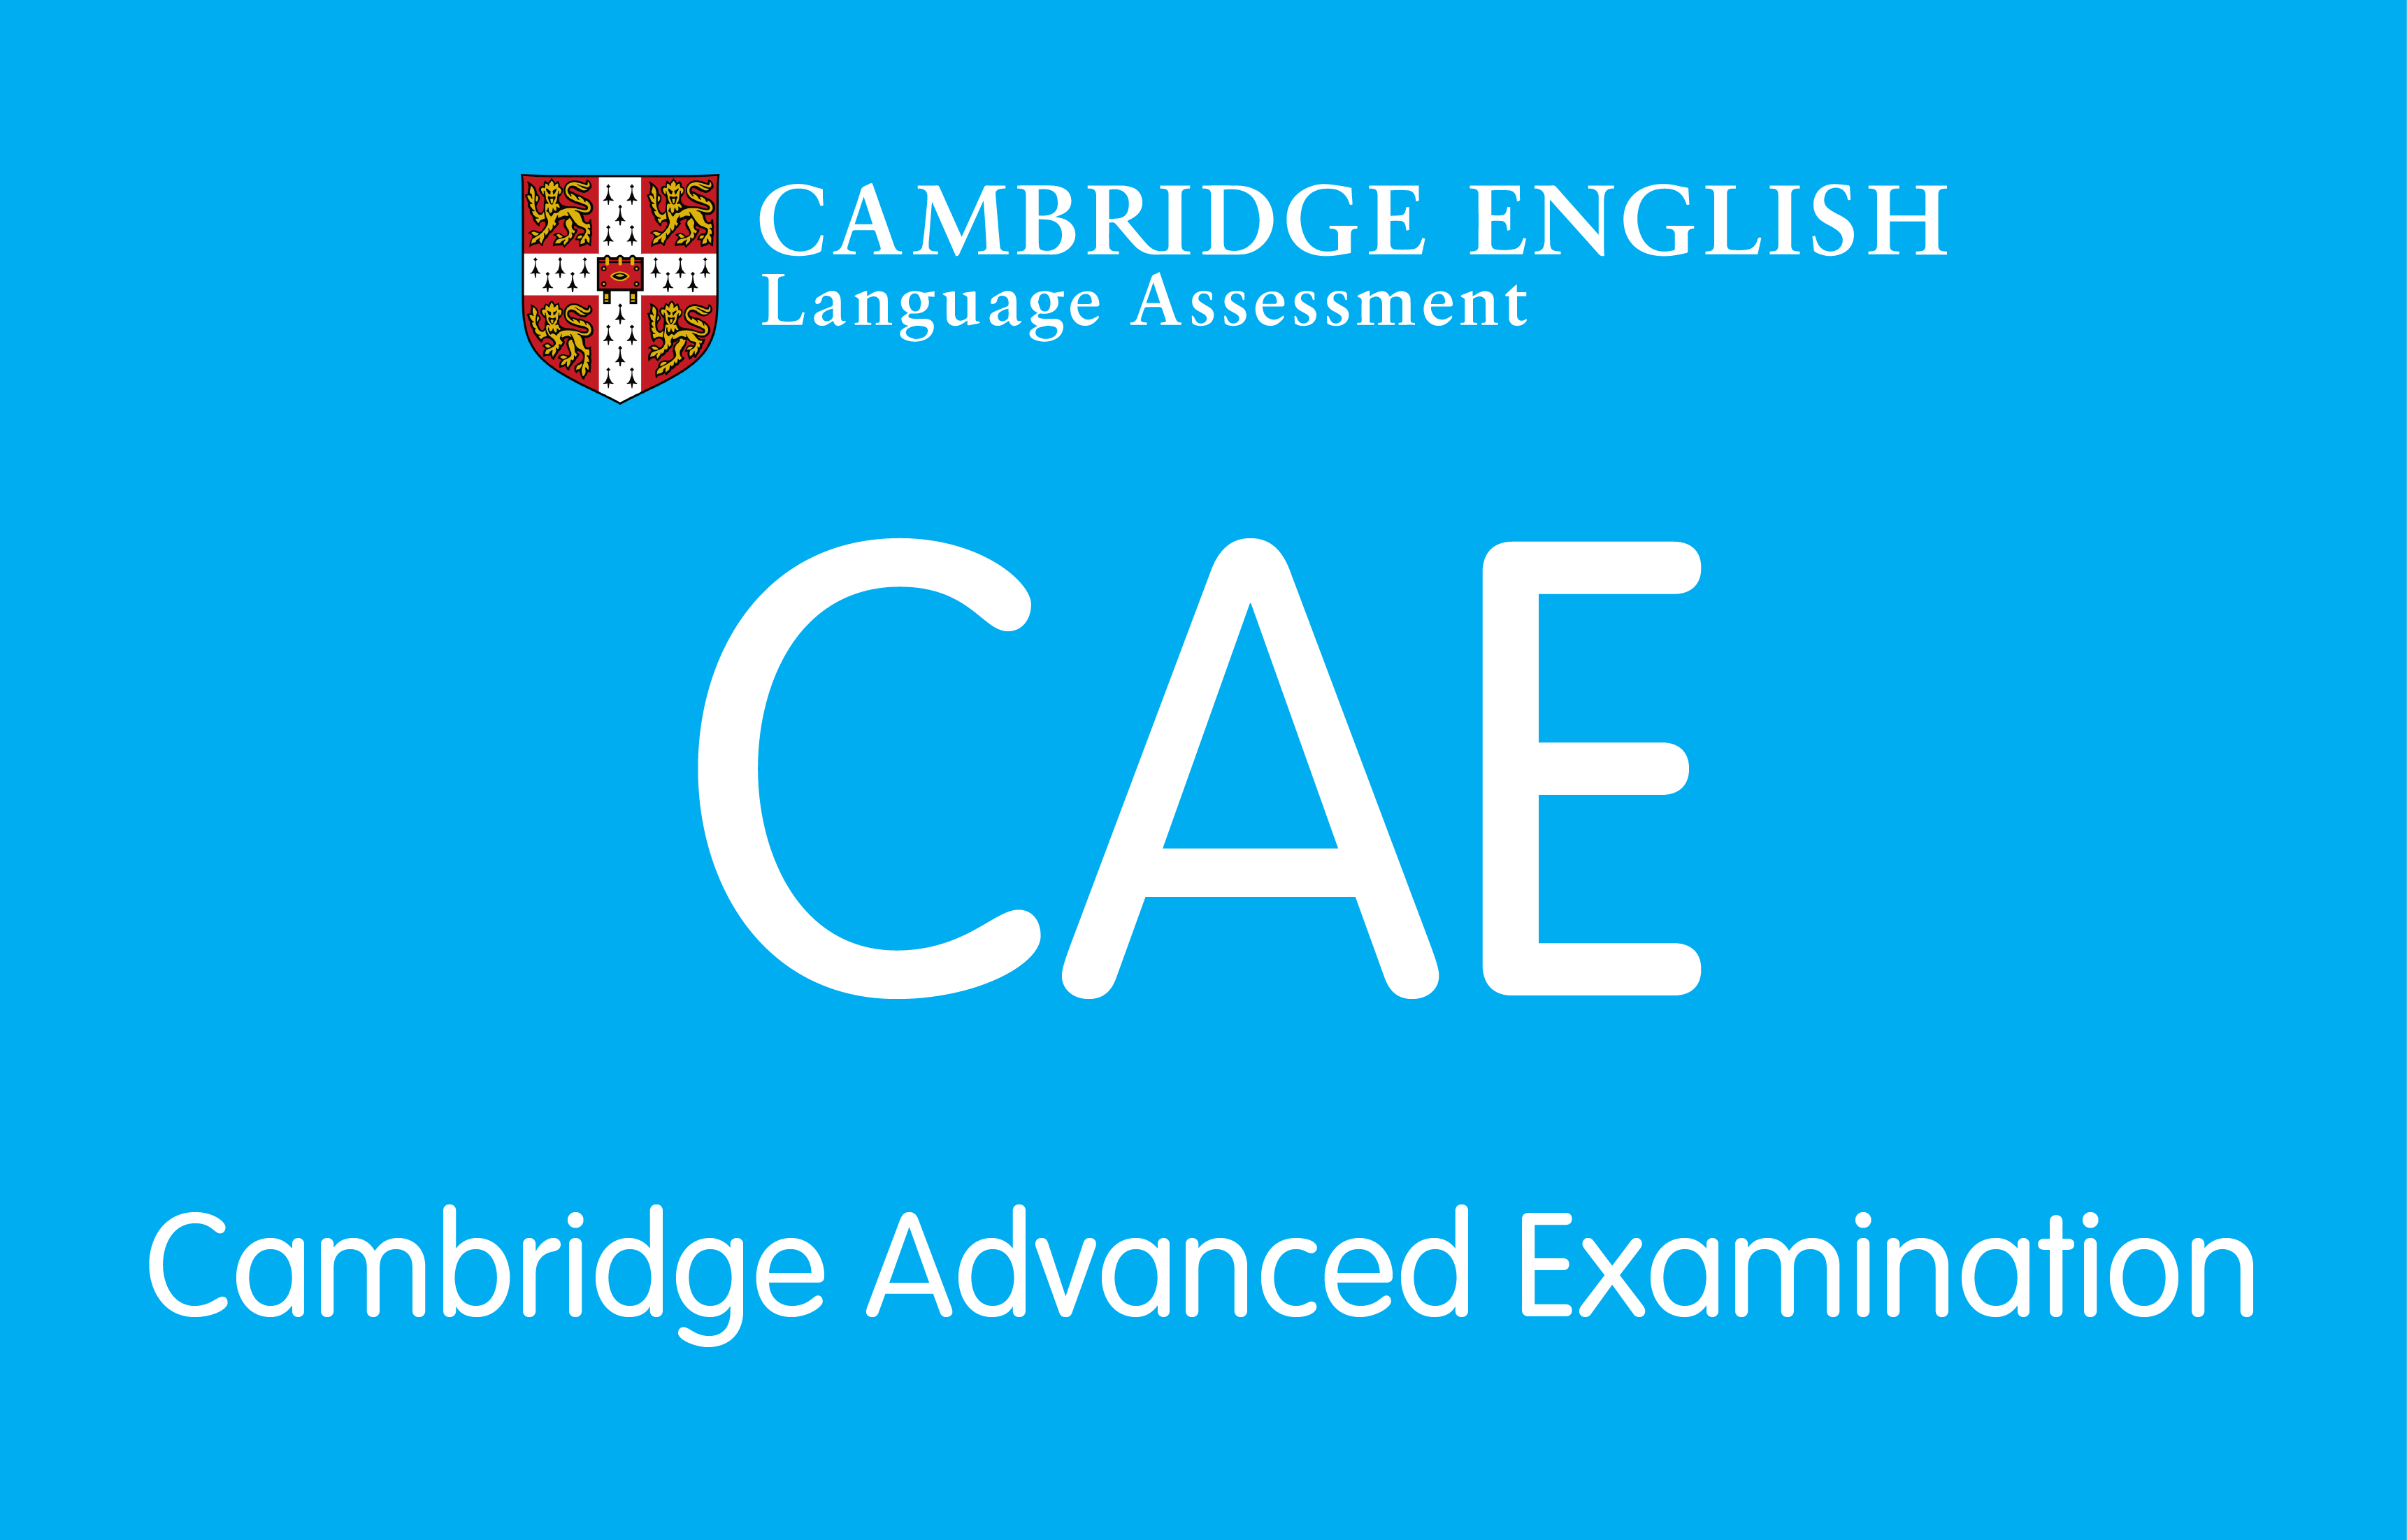 Learntalk testprepcategoryicons cambridge studies 06  1